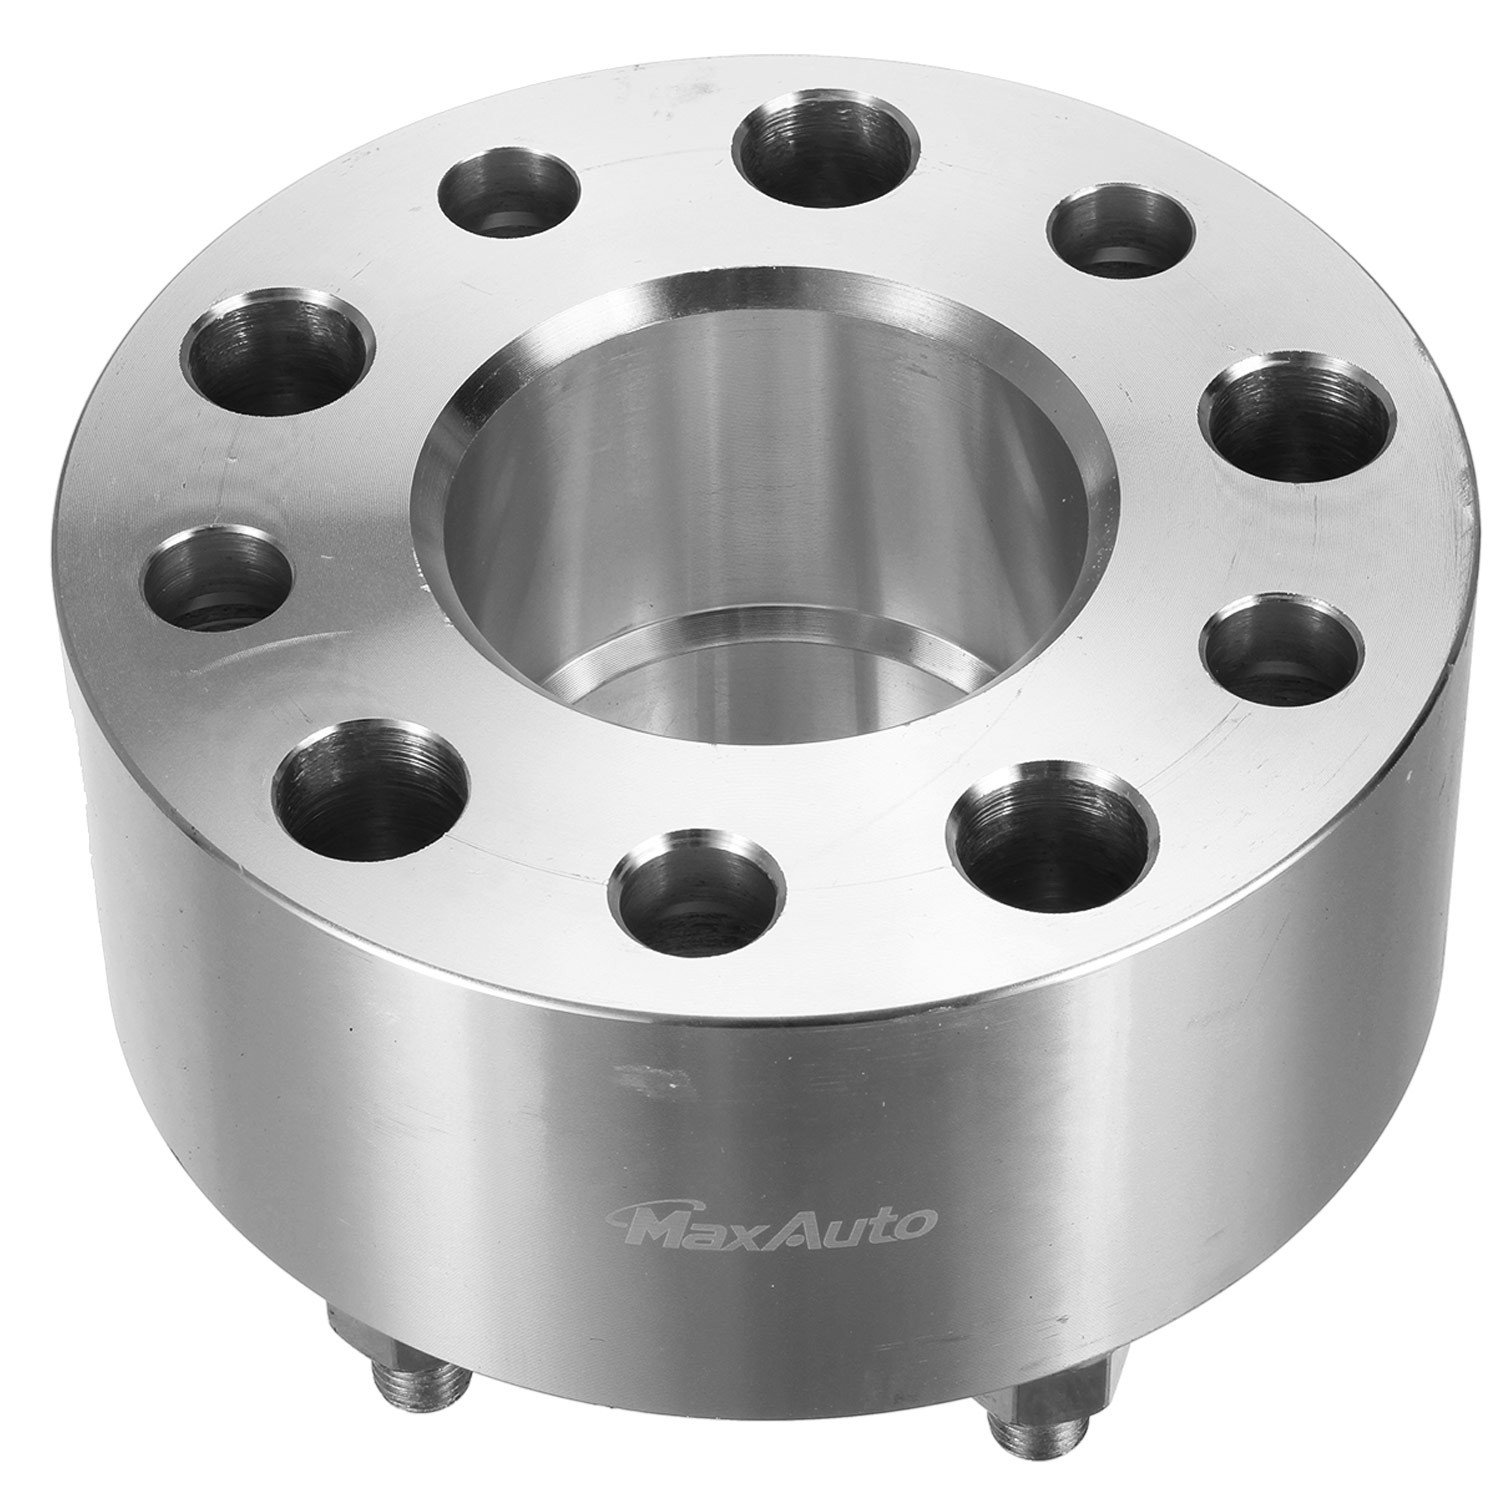 MaxAuto 64mm (2.5'') Thick 5x4.75/5x120.65 Hubcentric Wheel Spacers No Lip 12x1.5 Studs for 79-85 Cadillac Eldorad,03-09 Cadillac XLR,77-87 Chevrolet Impala,90-05 GMC Jimmy Silver (4) by MaxAuto (Image #7)